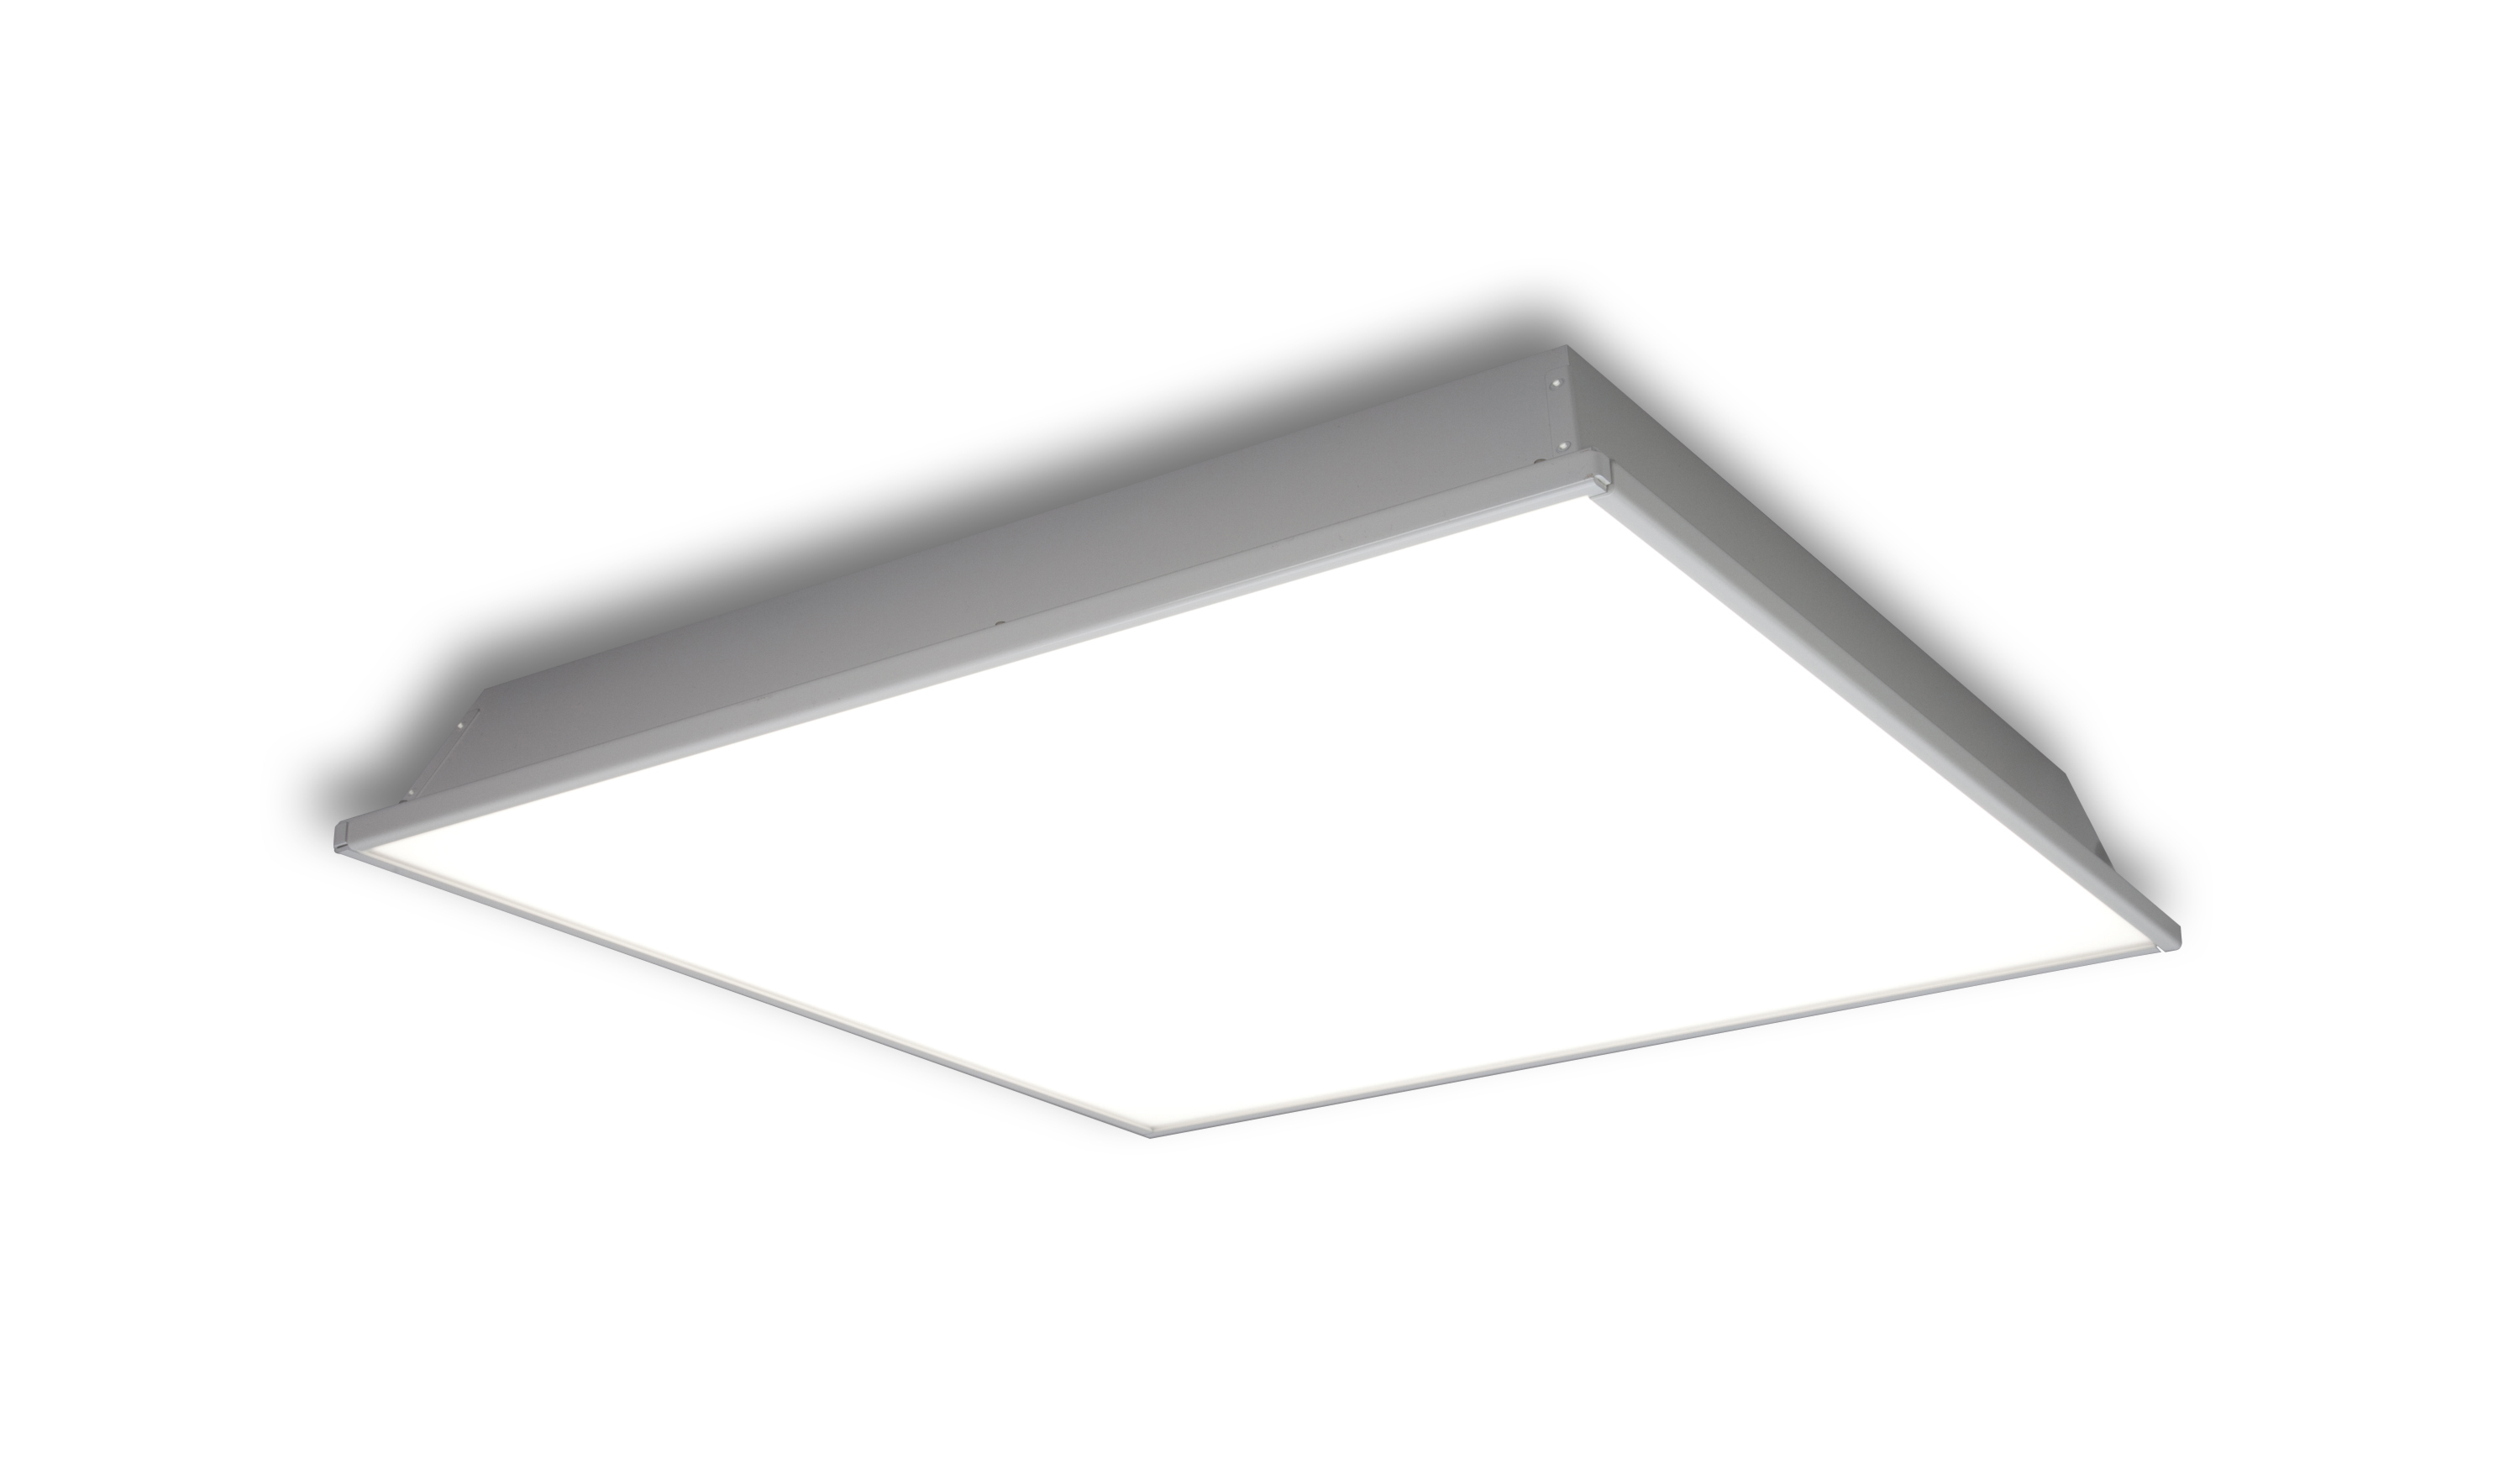 ge s lumination bt series led lighting fixture refreshes commercial ceilings ge lighting. Black Bedroom Furniture Sets. Home Design Ideas